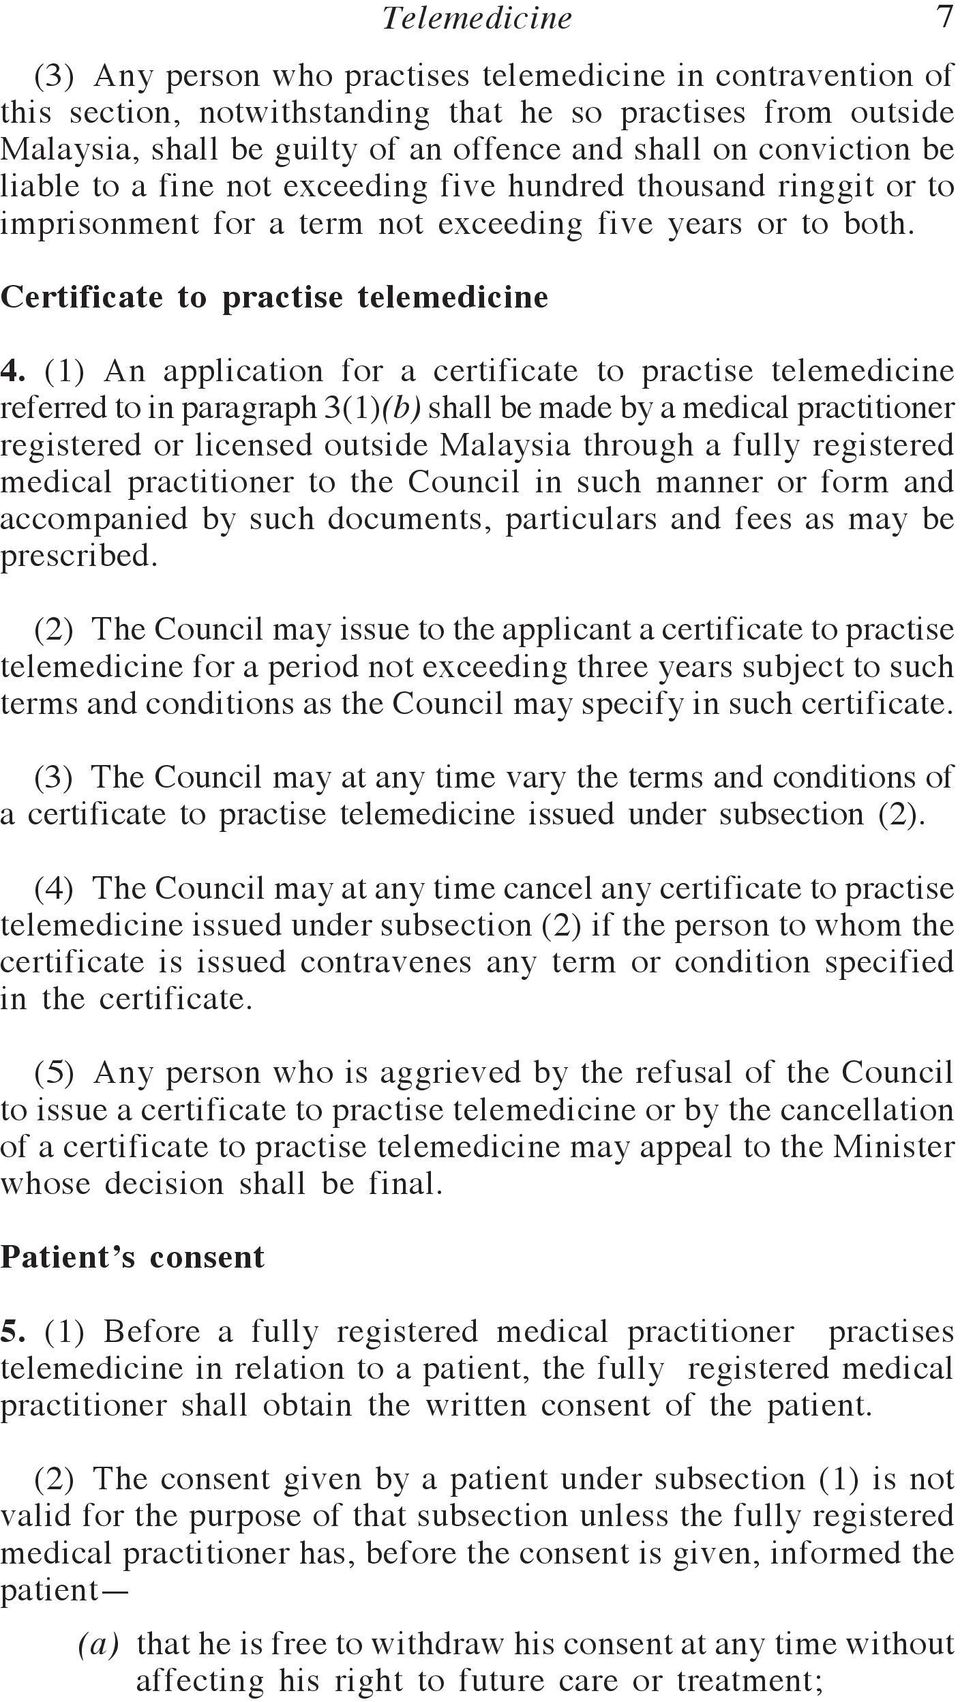 (1) An application for a certificate to practise telemedicine referred to in paragraph 3(1)(b) shall be made by a medical practitioner registered or licensed outside Malaysia through a fully